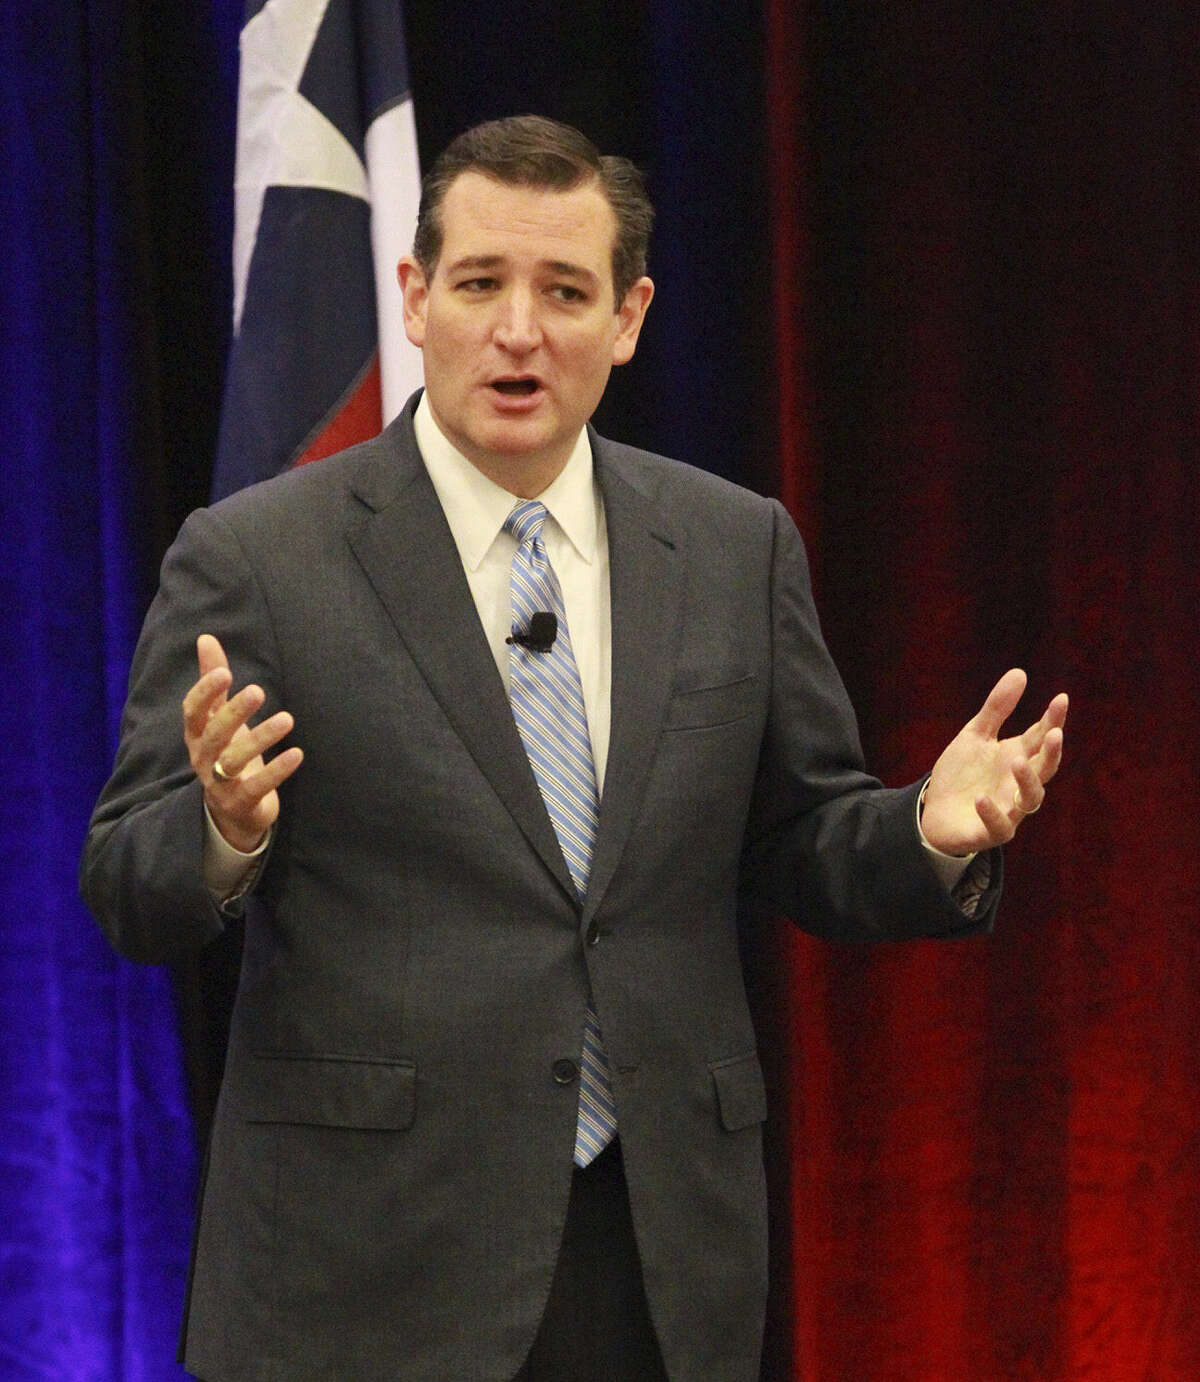 Senator Ted Cruz discussed immigration during an address to the San Antonio Chamber of Commerce earlier this summer. One of our readers criticizes the senator for his stance on immigration, including the recent influx of people from Central America.